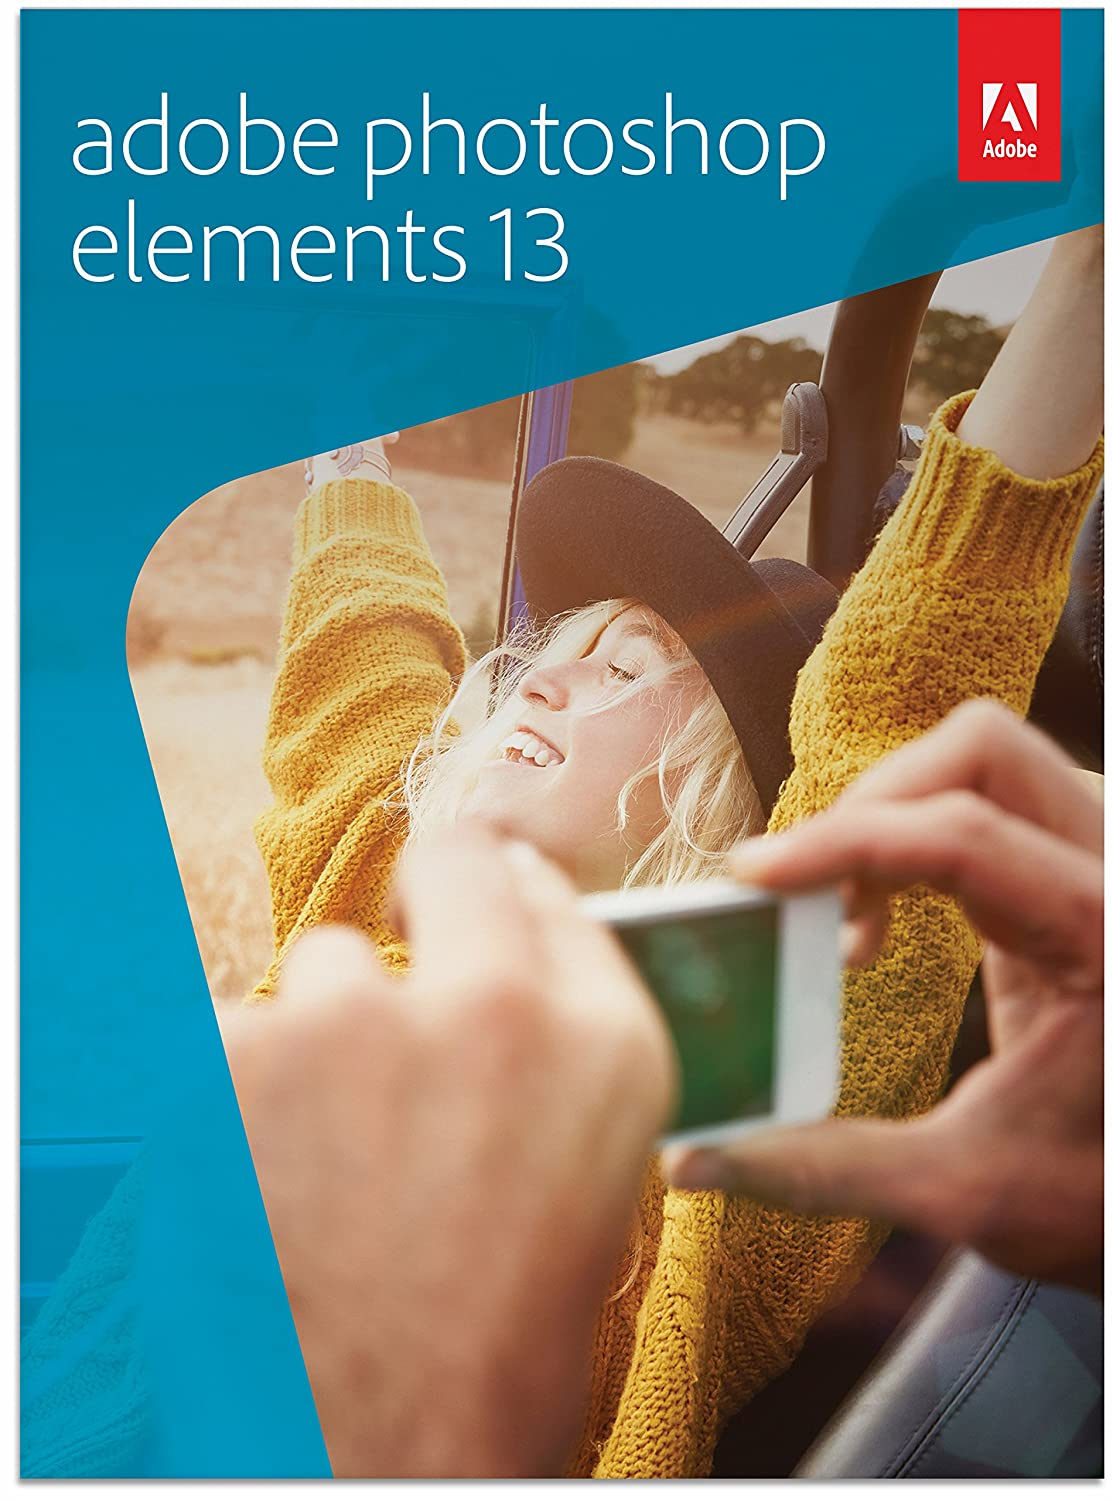 Adobe photoshop elements v7.0 incl keymaker core by nofear